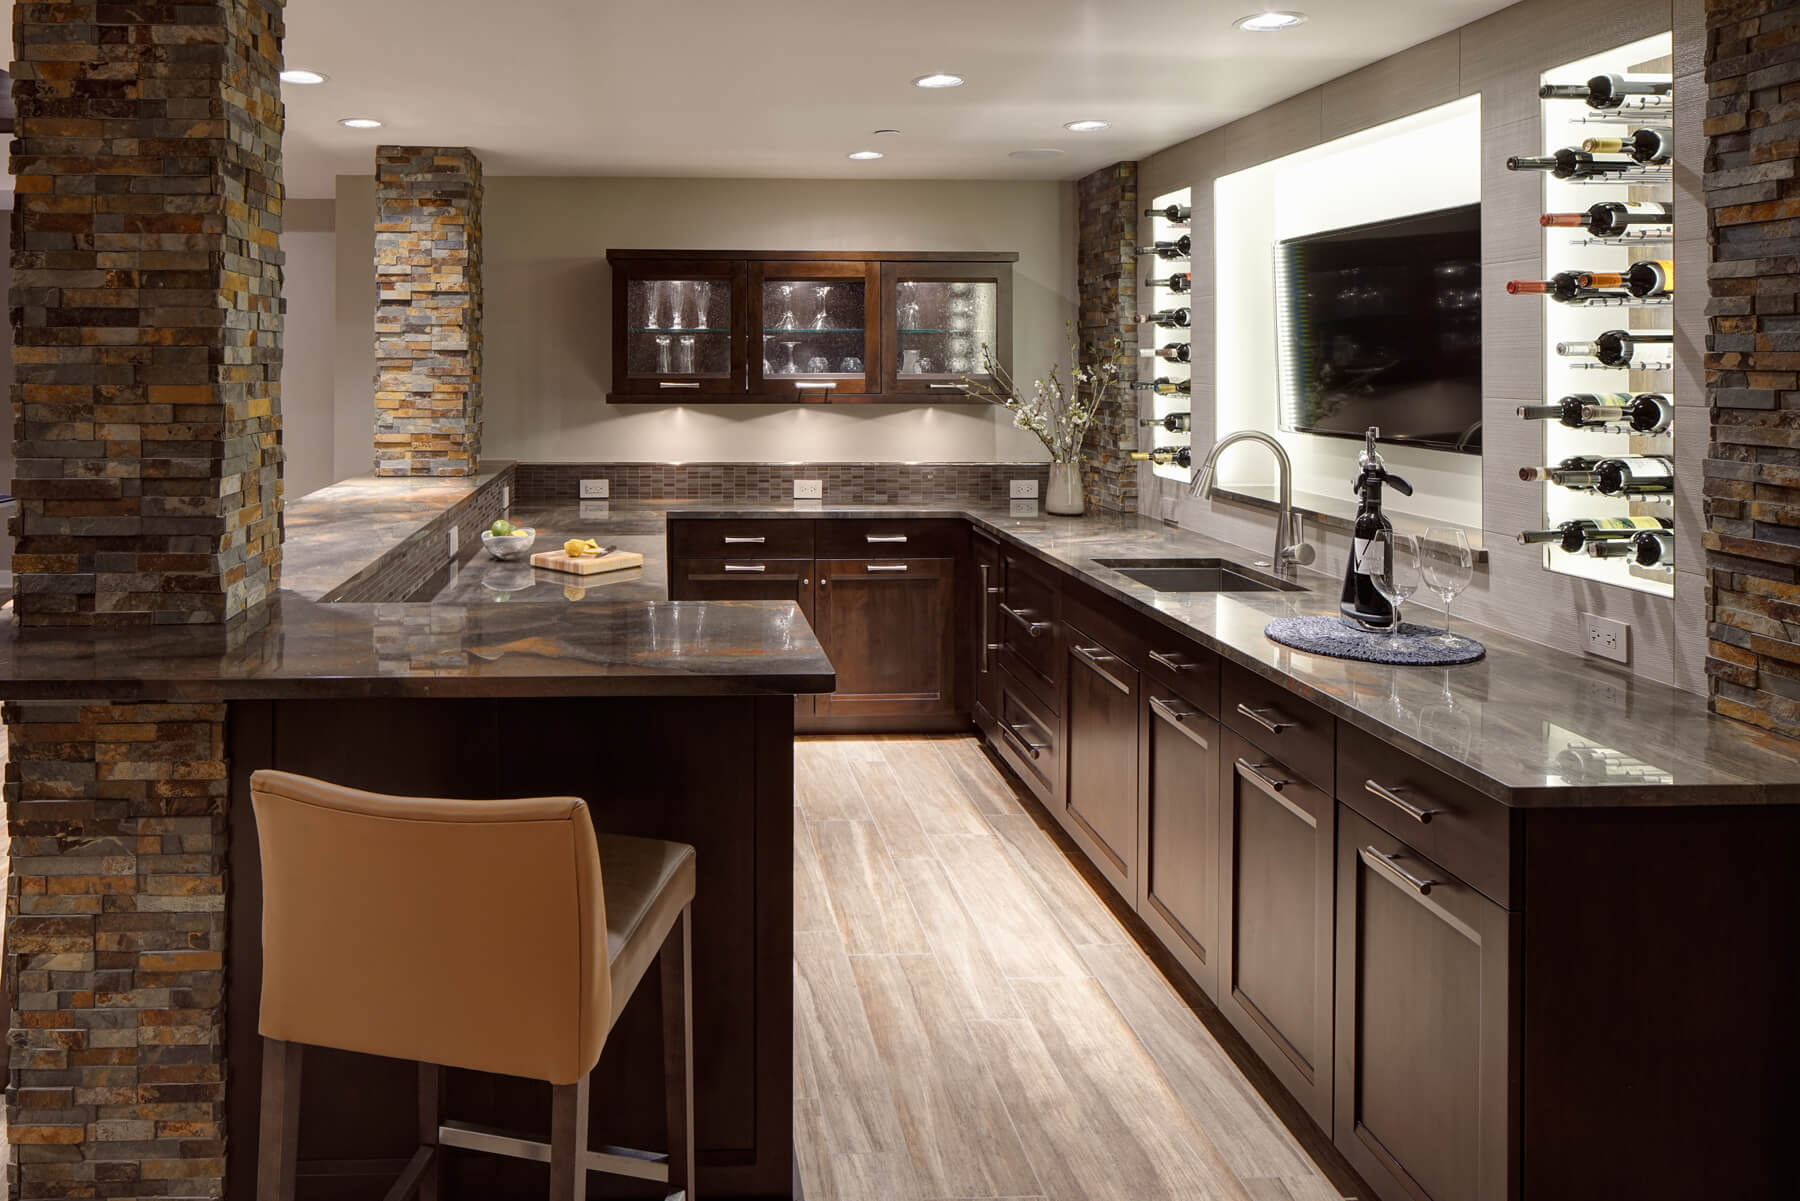 The bar cabinetry features stainless hardware beneath quartzite countertops, while sink is backed by a recessed television cove, flanked by inner-lit wine shelving. Glassware can be seen behind rippled glass panel upper cabinet doors.